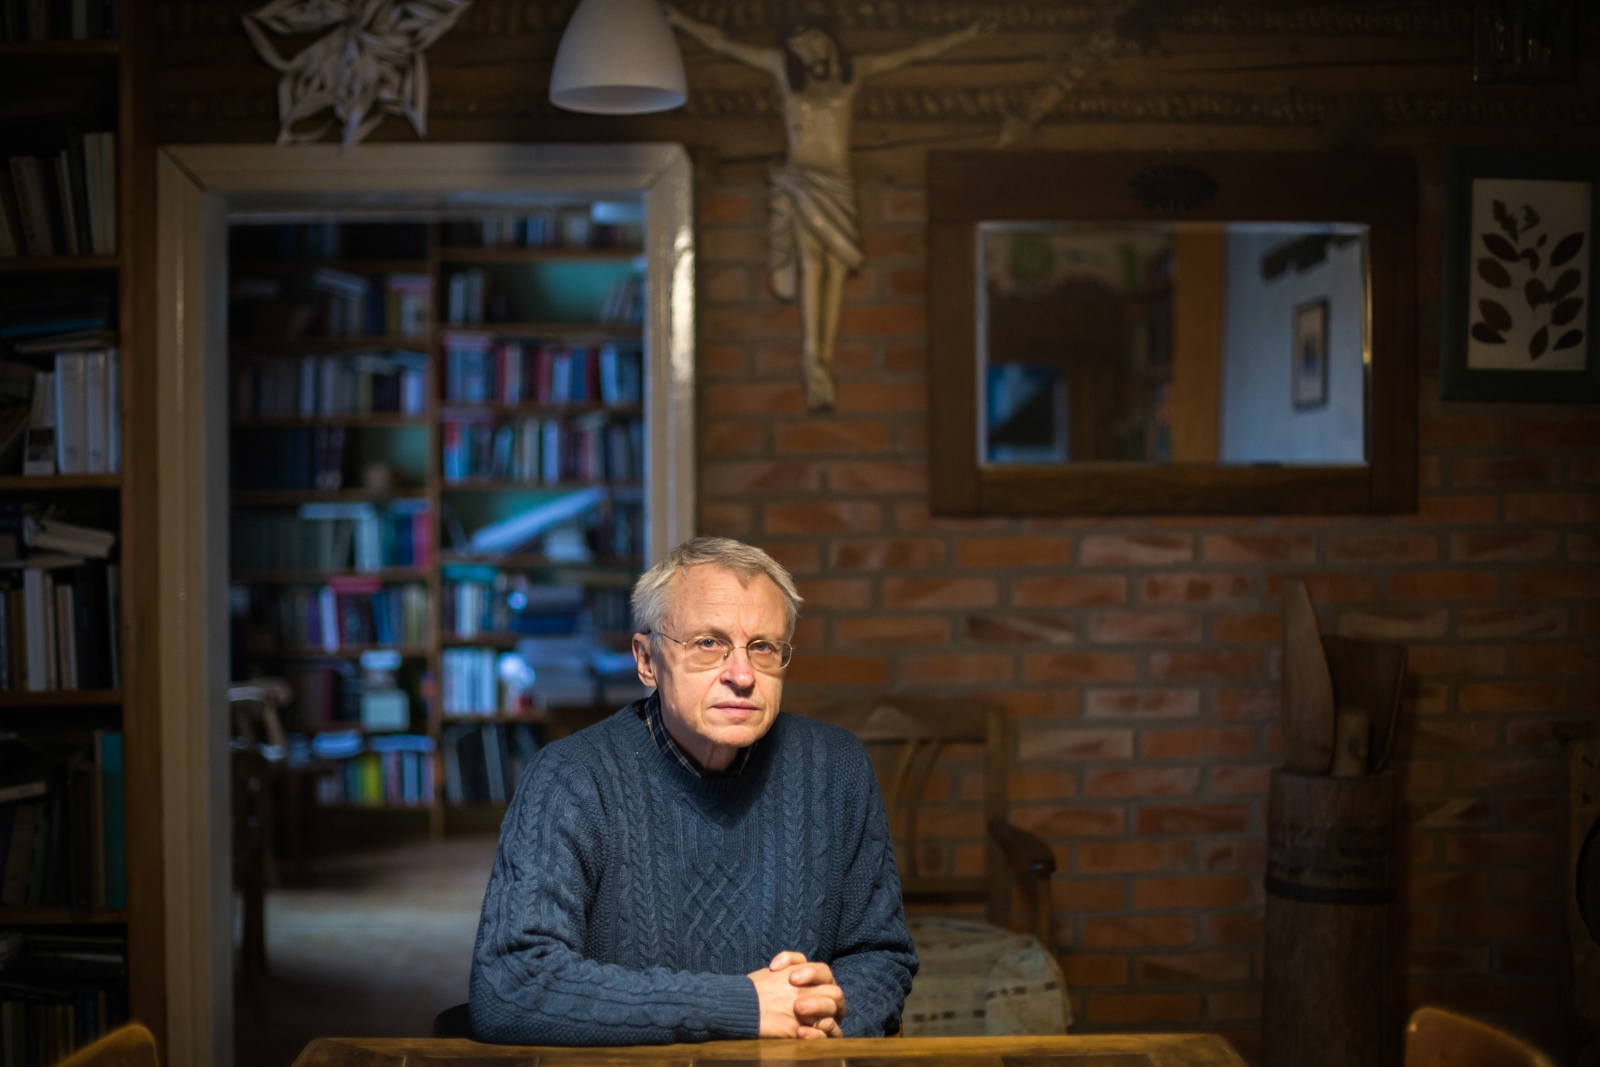 Jan Kazimierz Polkowski- poet, journalist,activist of NSZZ Solidarnosc.President of the Smolensk Foundation,responsible for supporting the implementation and dissemination of the feature film Smolensk. Poland BuzzFeed News